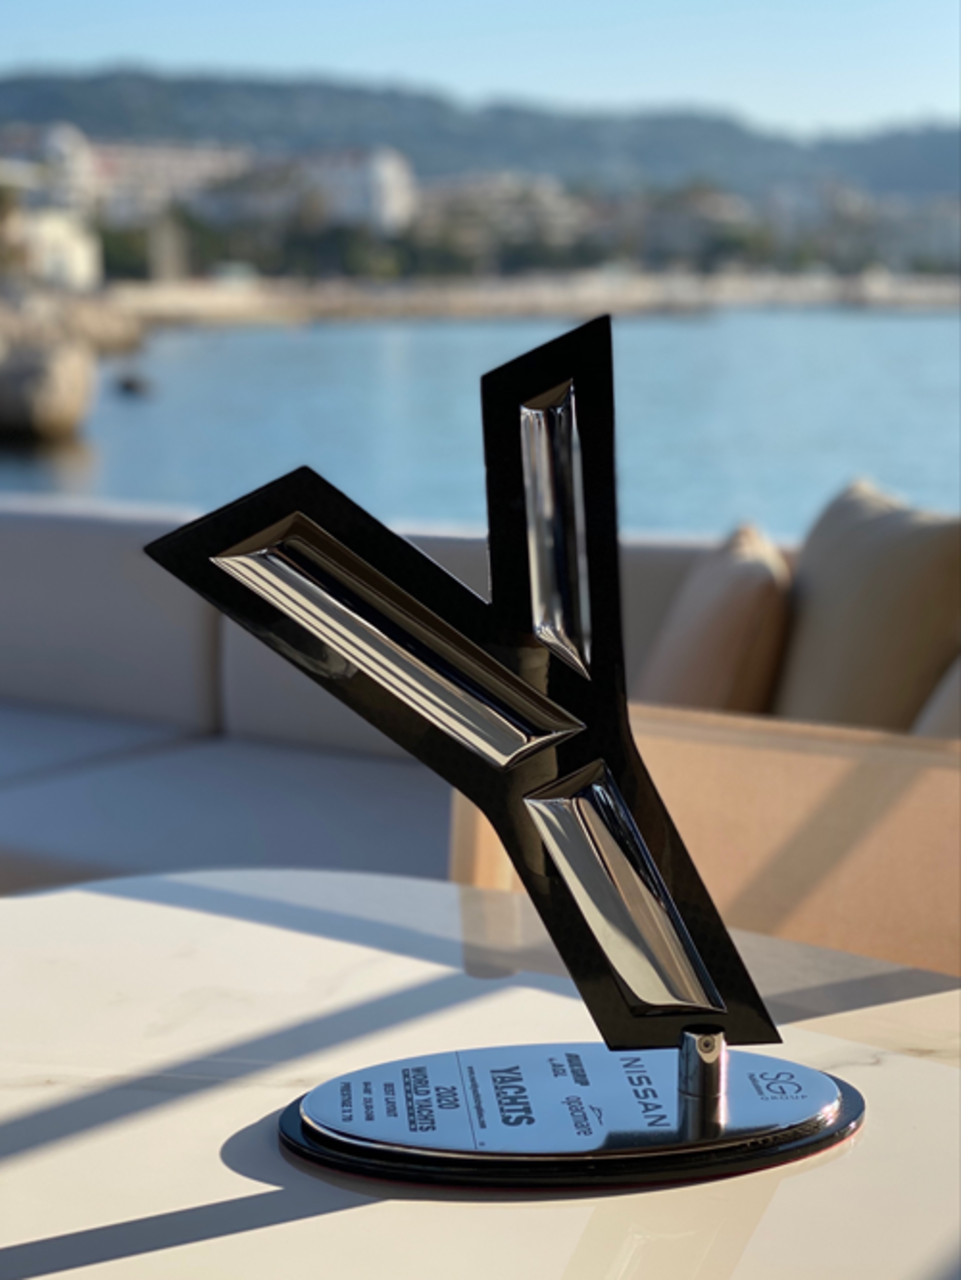 L'X70 premiato ai World Yacht Trophies 2020 2